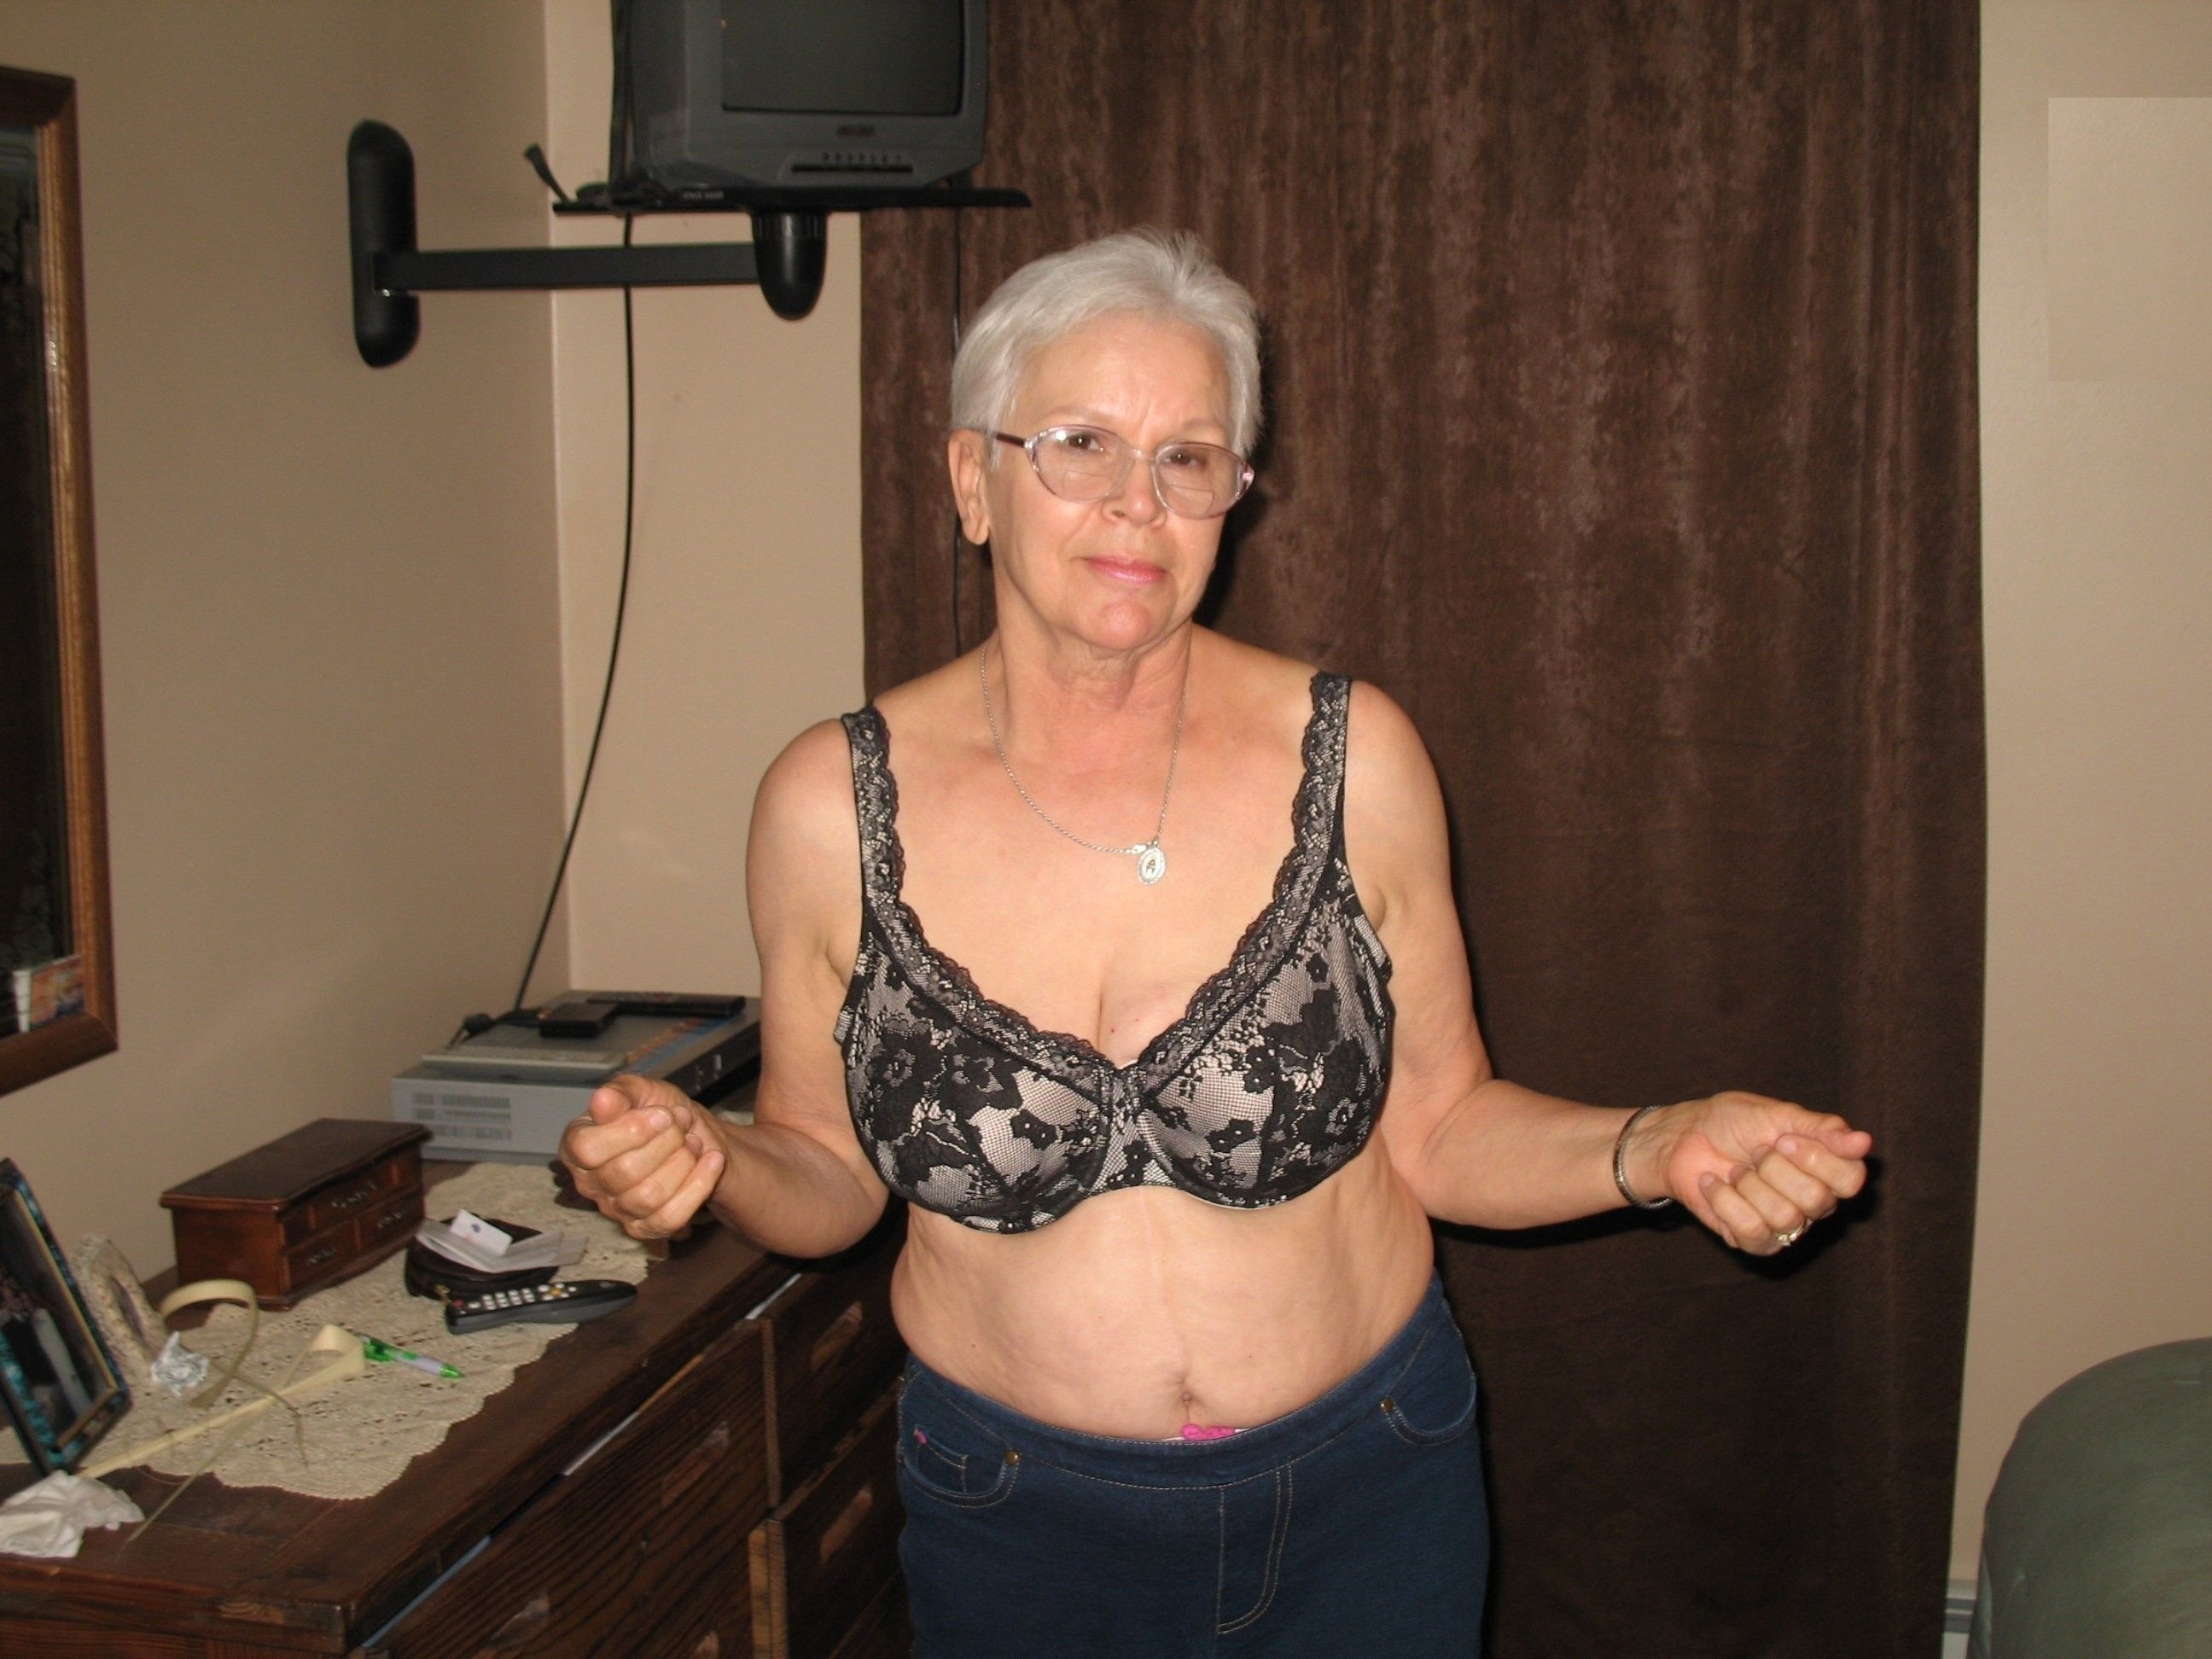 Shivers skinny grandma fuck ass cock Great